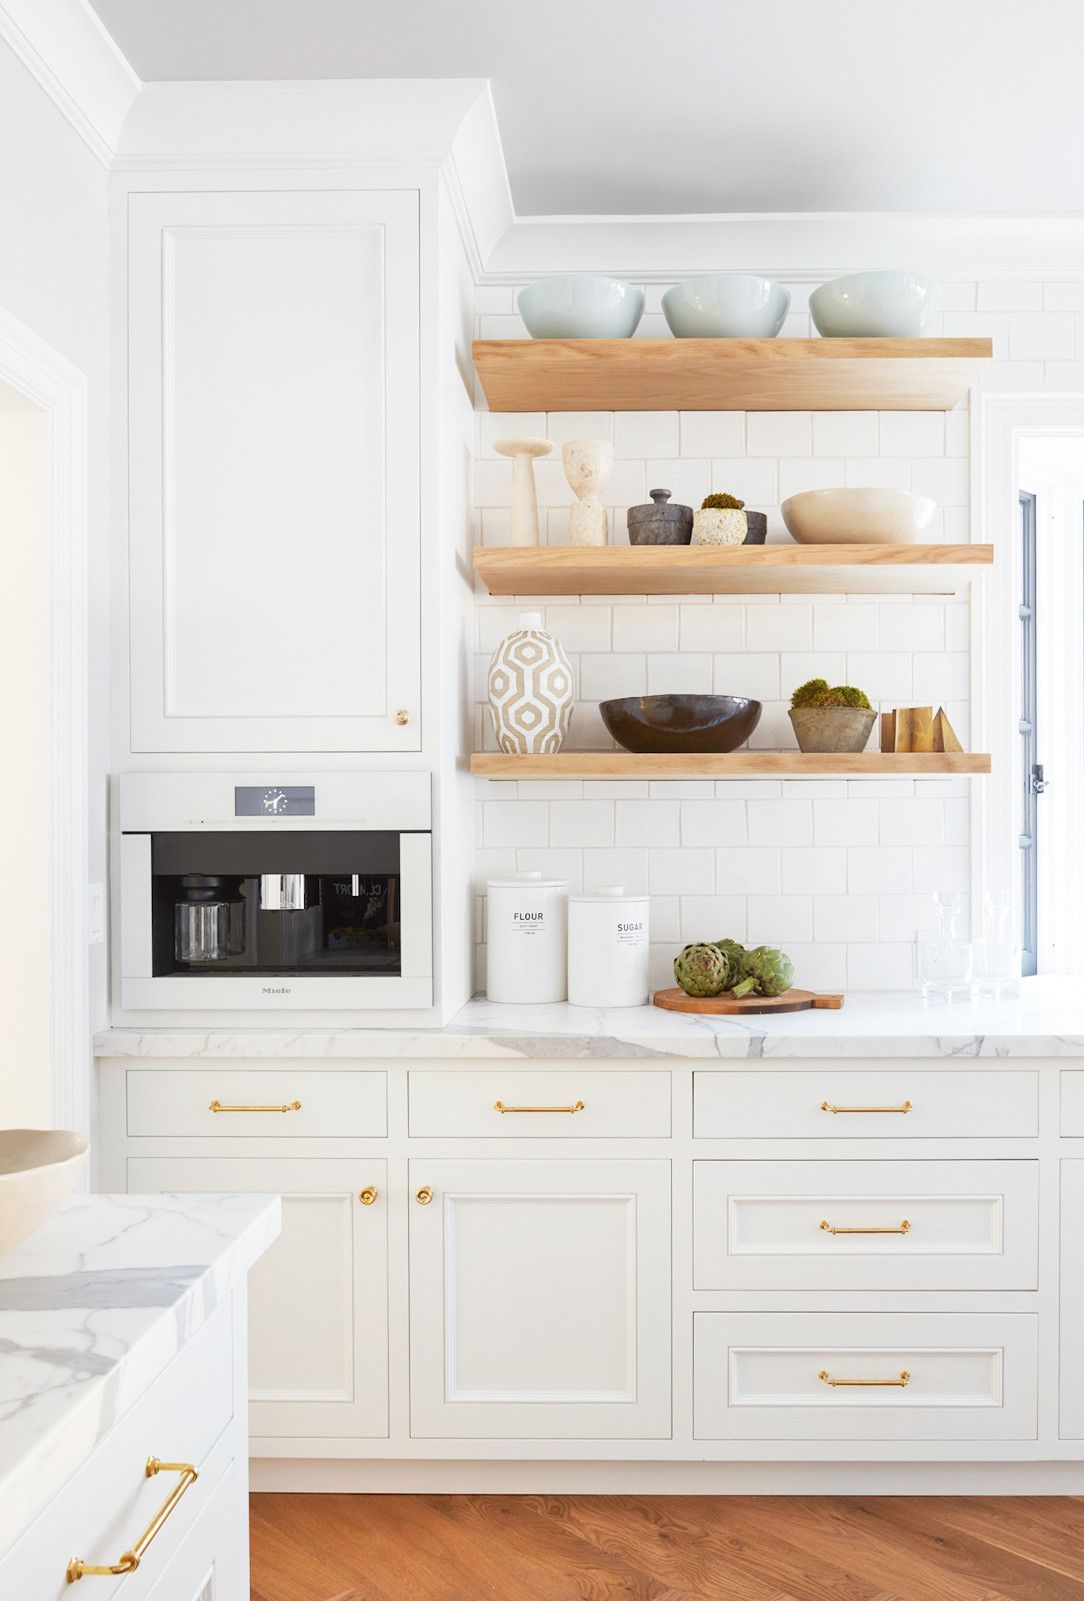 Designers Cringe Every Time They See This Kitchen Decorating Fair Design Your Own Kitchens 2018